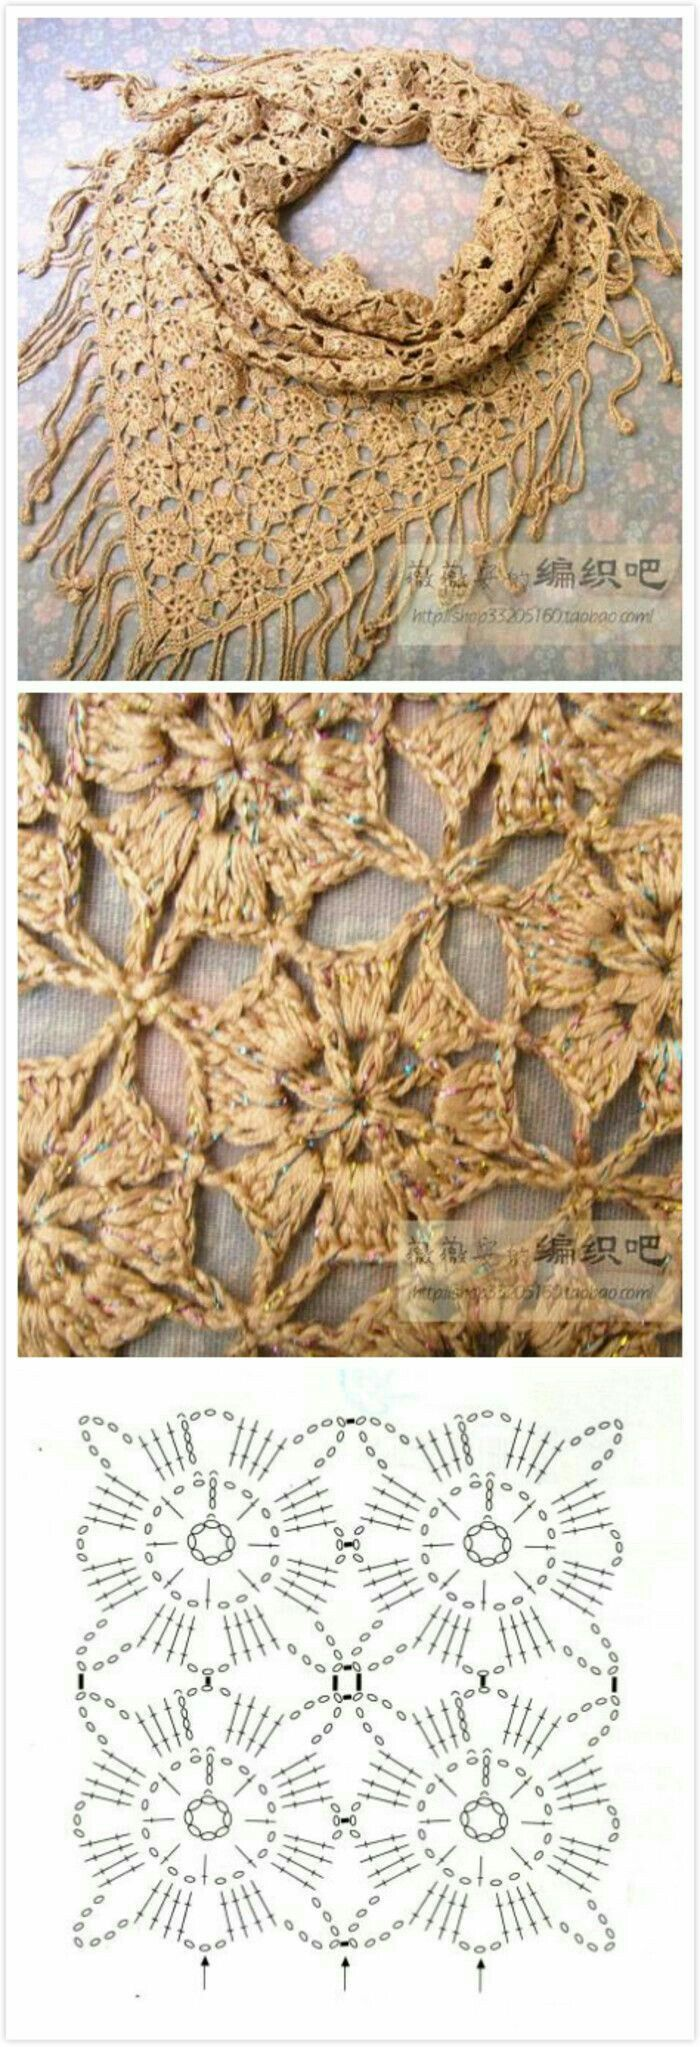 Pretty join as you go square lacy crochet flower shawl or pretty join as you go square lacy crochet flower shawl or blanket crochet lacecrochet flower scarfcrochet bankloansurffo Image collections